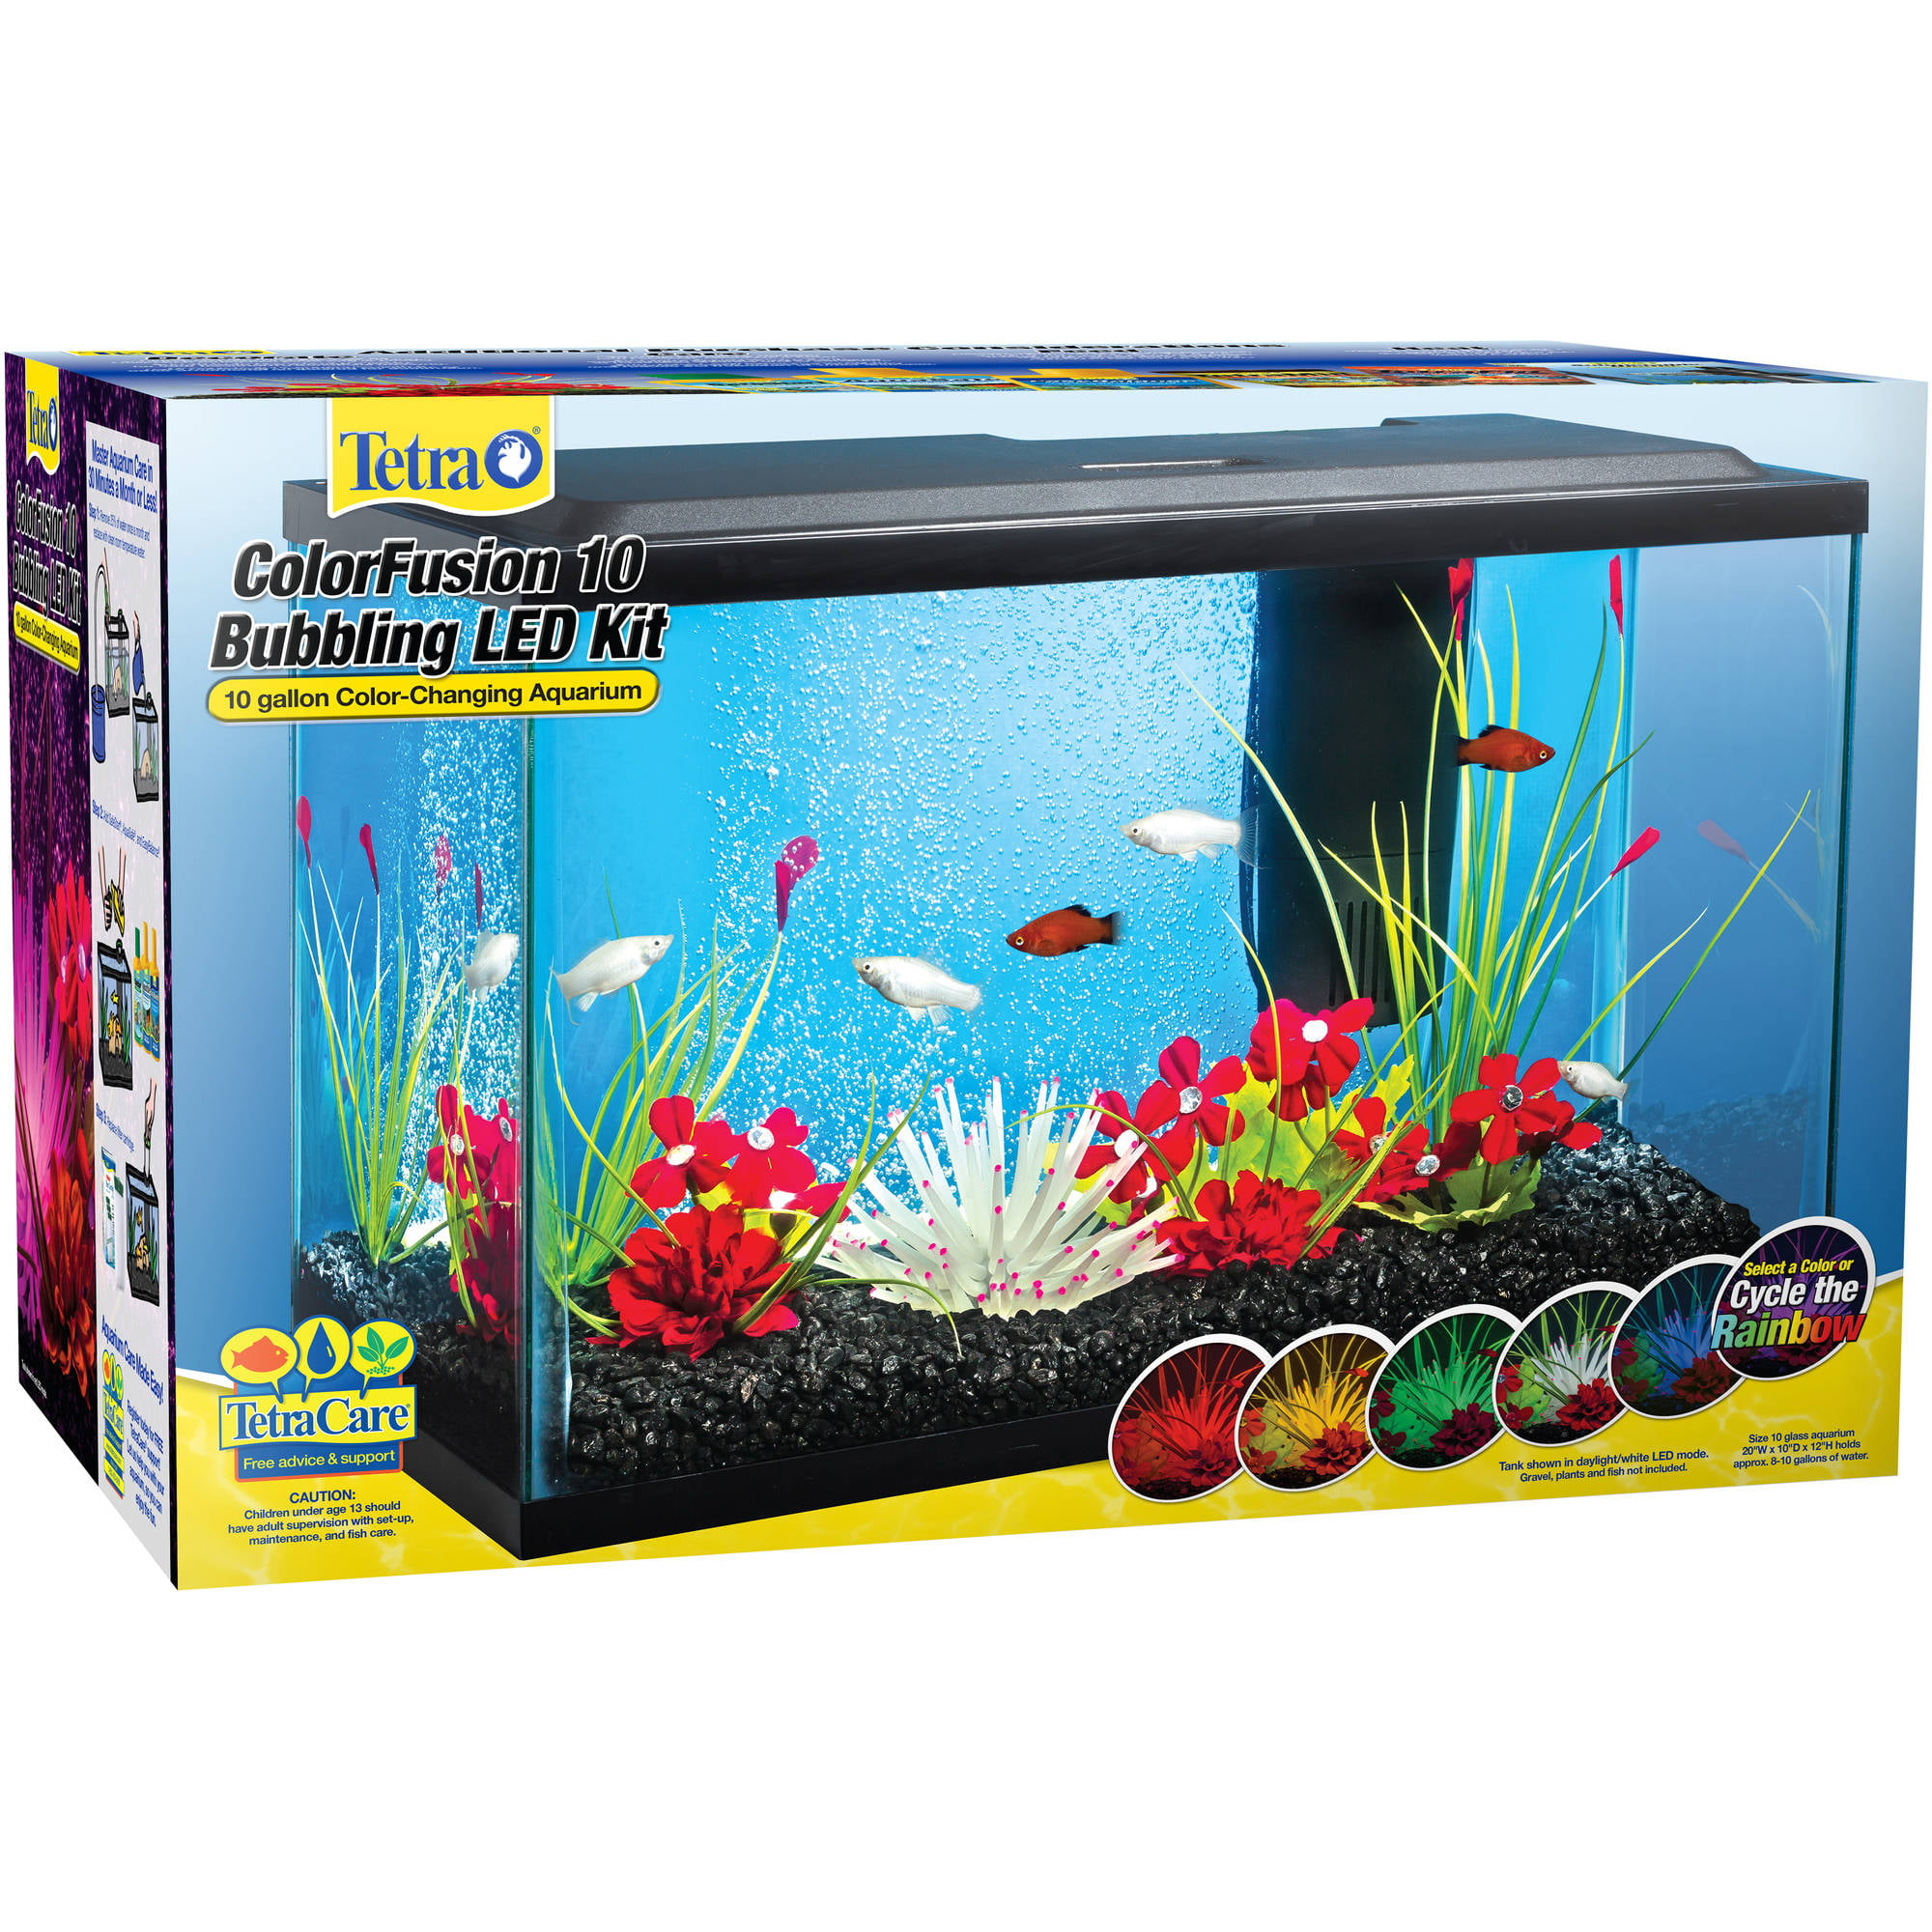 Tetra aquarium 10 gallon tank fish kit led light colors for 10 gallon fish tank heater